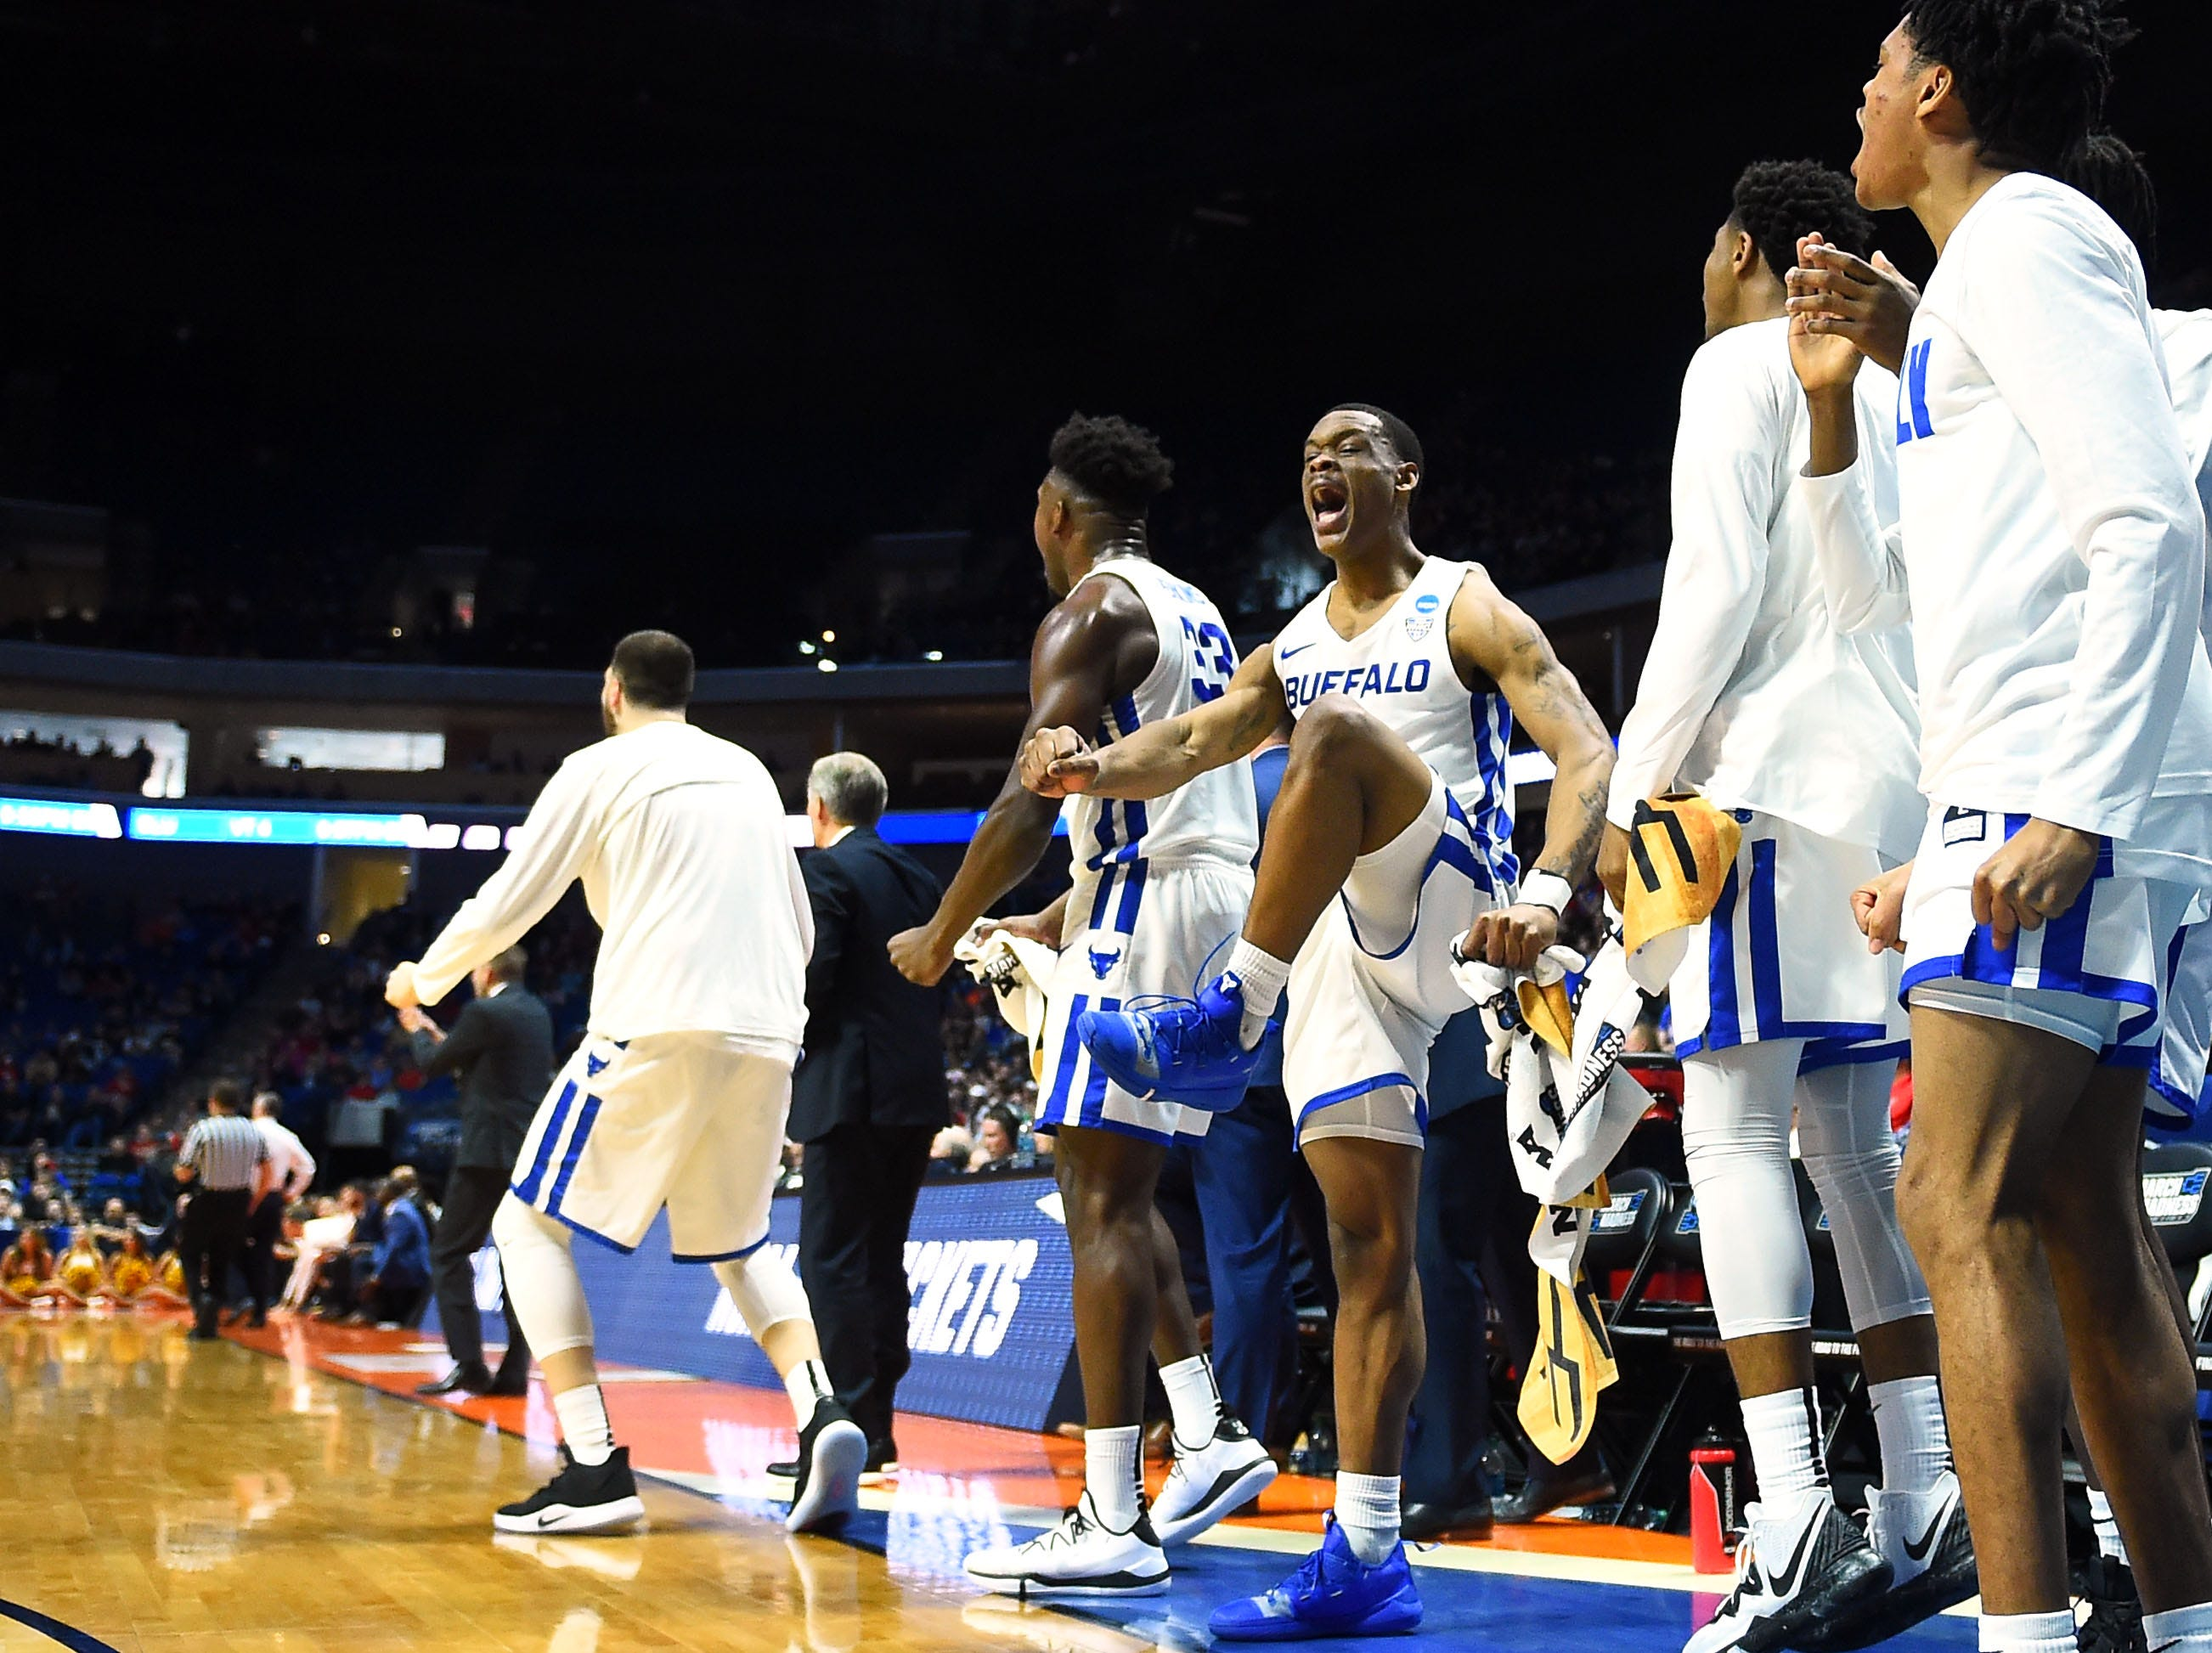 TULSA, OKLAHOMA - MARCH 22:  Davonta Jordan #4 of the Buffalo Bulls celebrates from the bench during the first half of the first round game of the 2019 NCAA Men's Basketball Tournament against the Arizona State Sun Devils at BOK Center on March 22, 2019 in Tulsa, Oklahoma. (Photo by Stacy Revere/Getty Images)